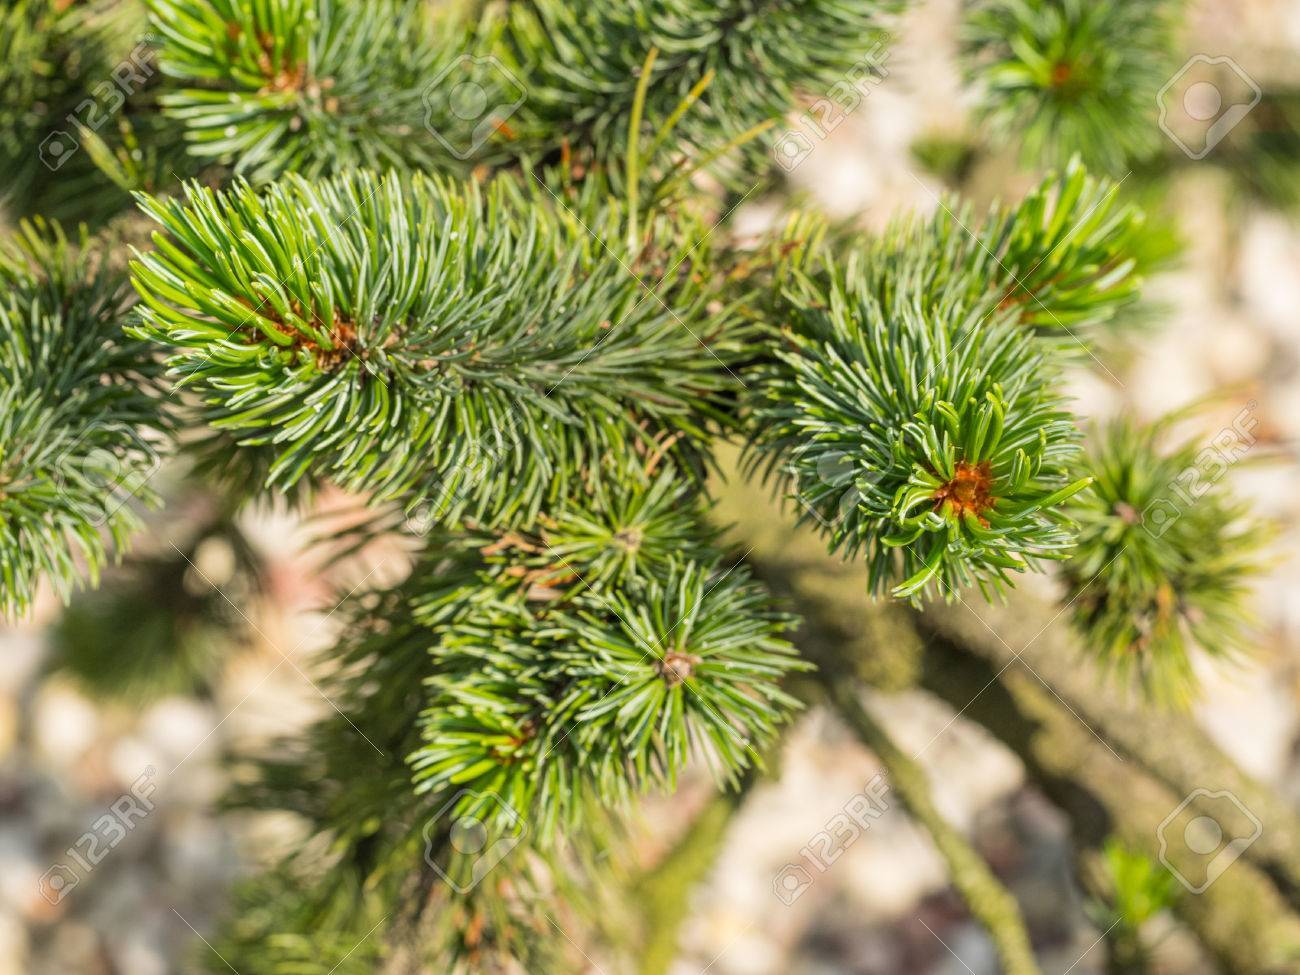 Norway Spruce Picea Abies Is A Species Of Spruce Native To